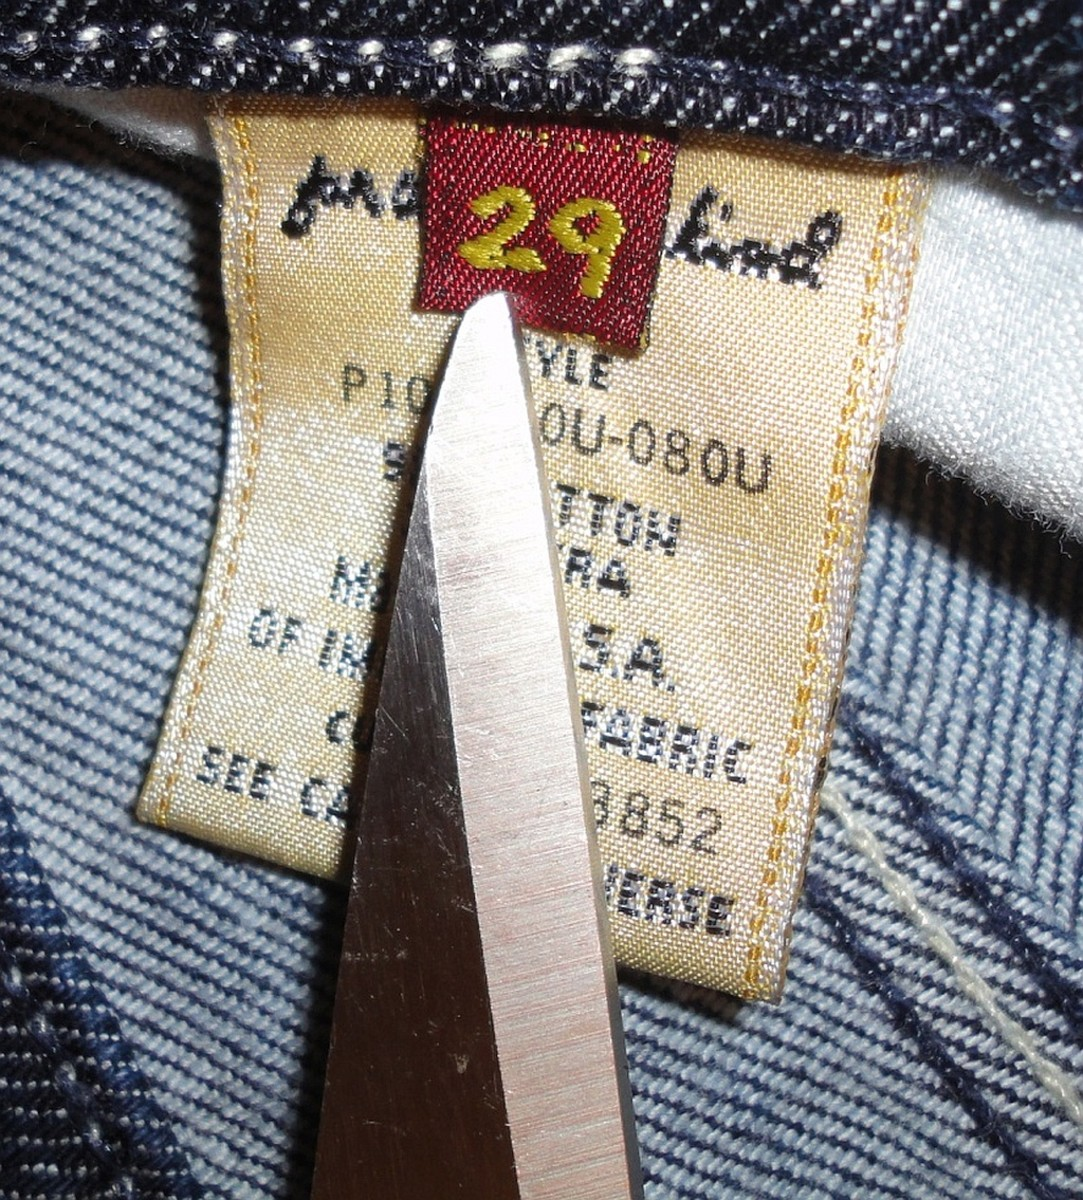 Genuine brand label showing detailed stitching & font on the inside tag